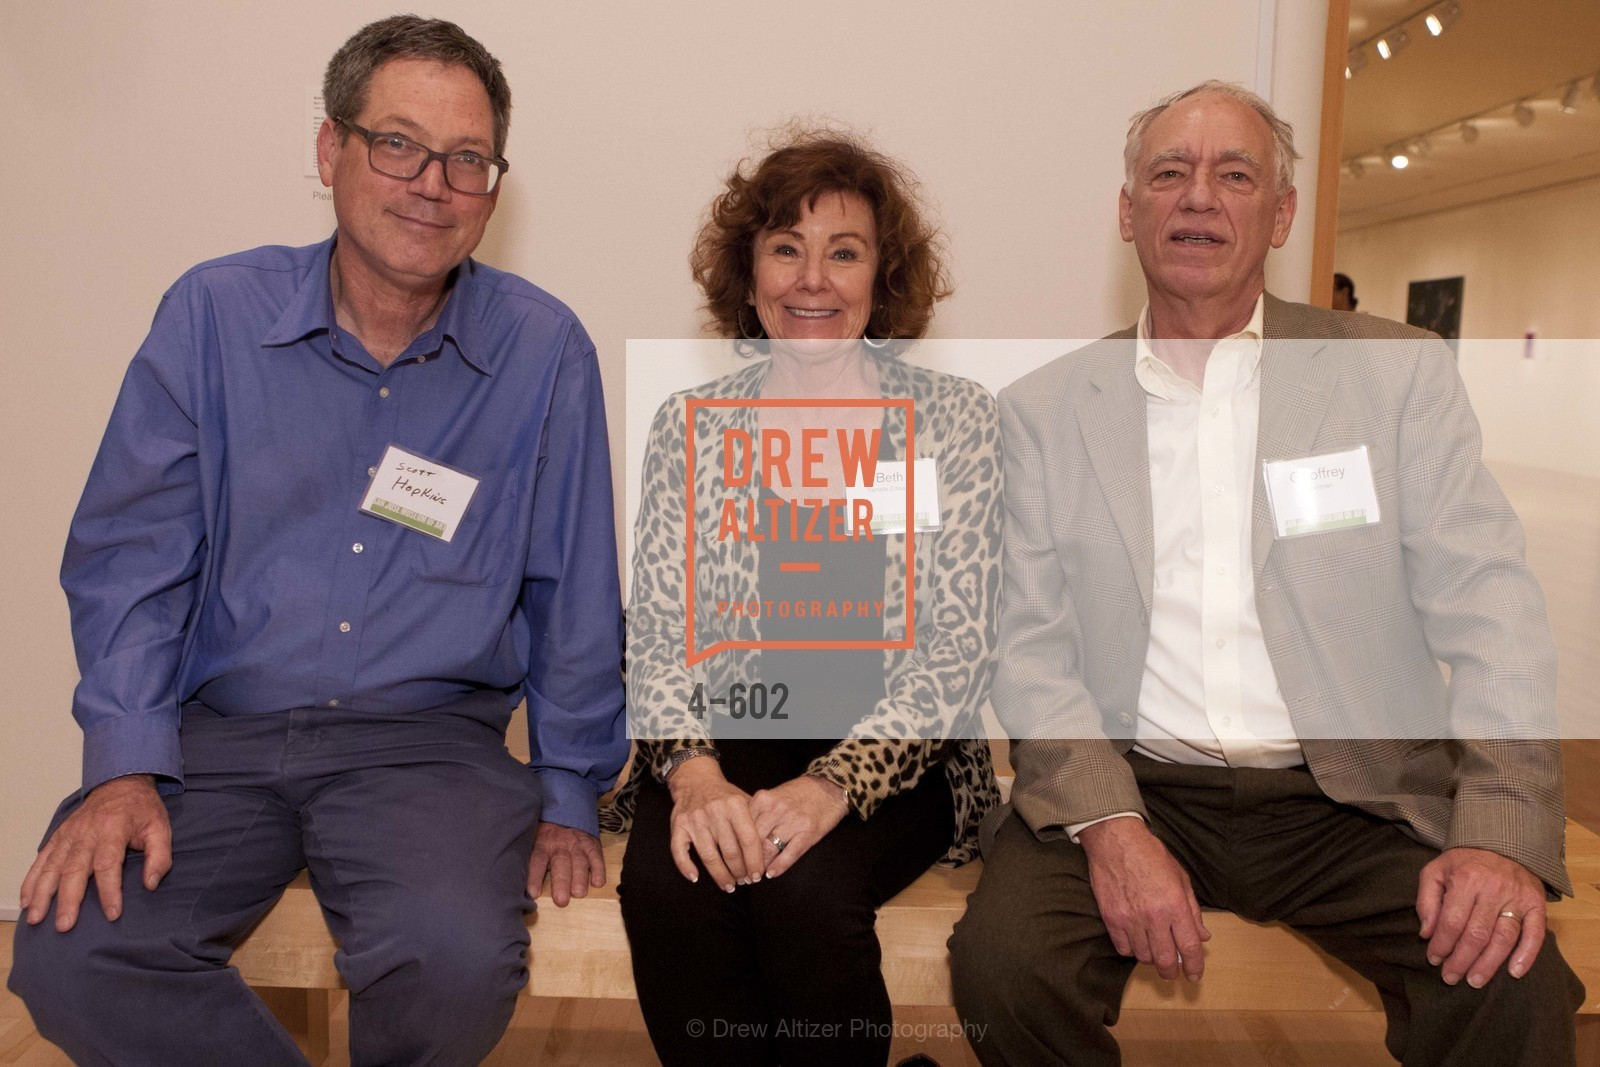 Scott Hopkins, Beth Yarnelle Edwards, Jeff Rothman, SAN JOSE MUSEUM OF ART Fall Reception Opening, US, October 9th, 2014,Drew Altizer, Drew Altizer Photography, full-service agency, private events, San Francisco photographer, photographer california